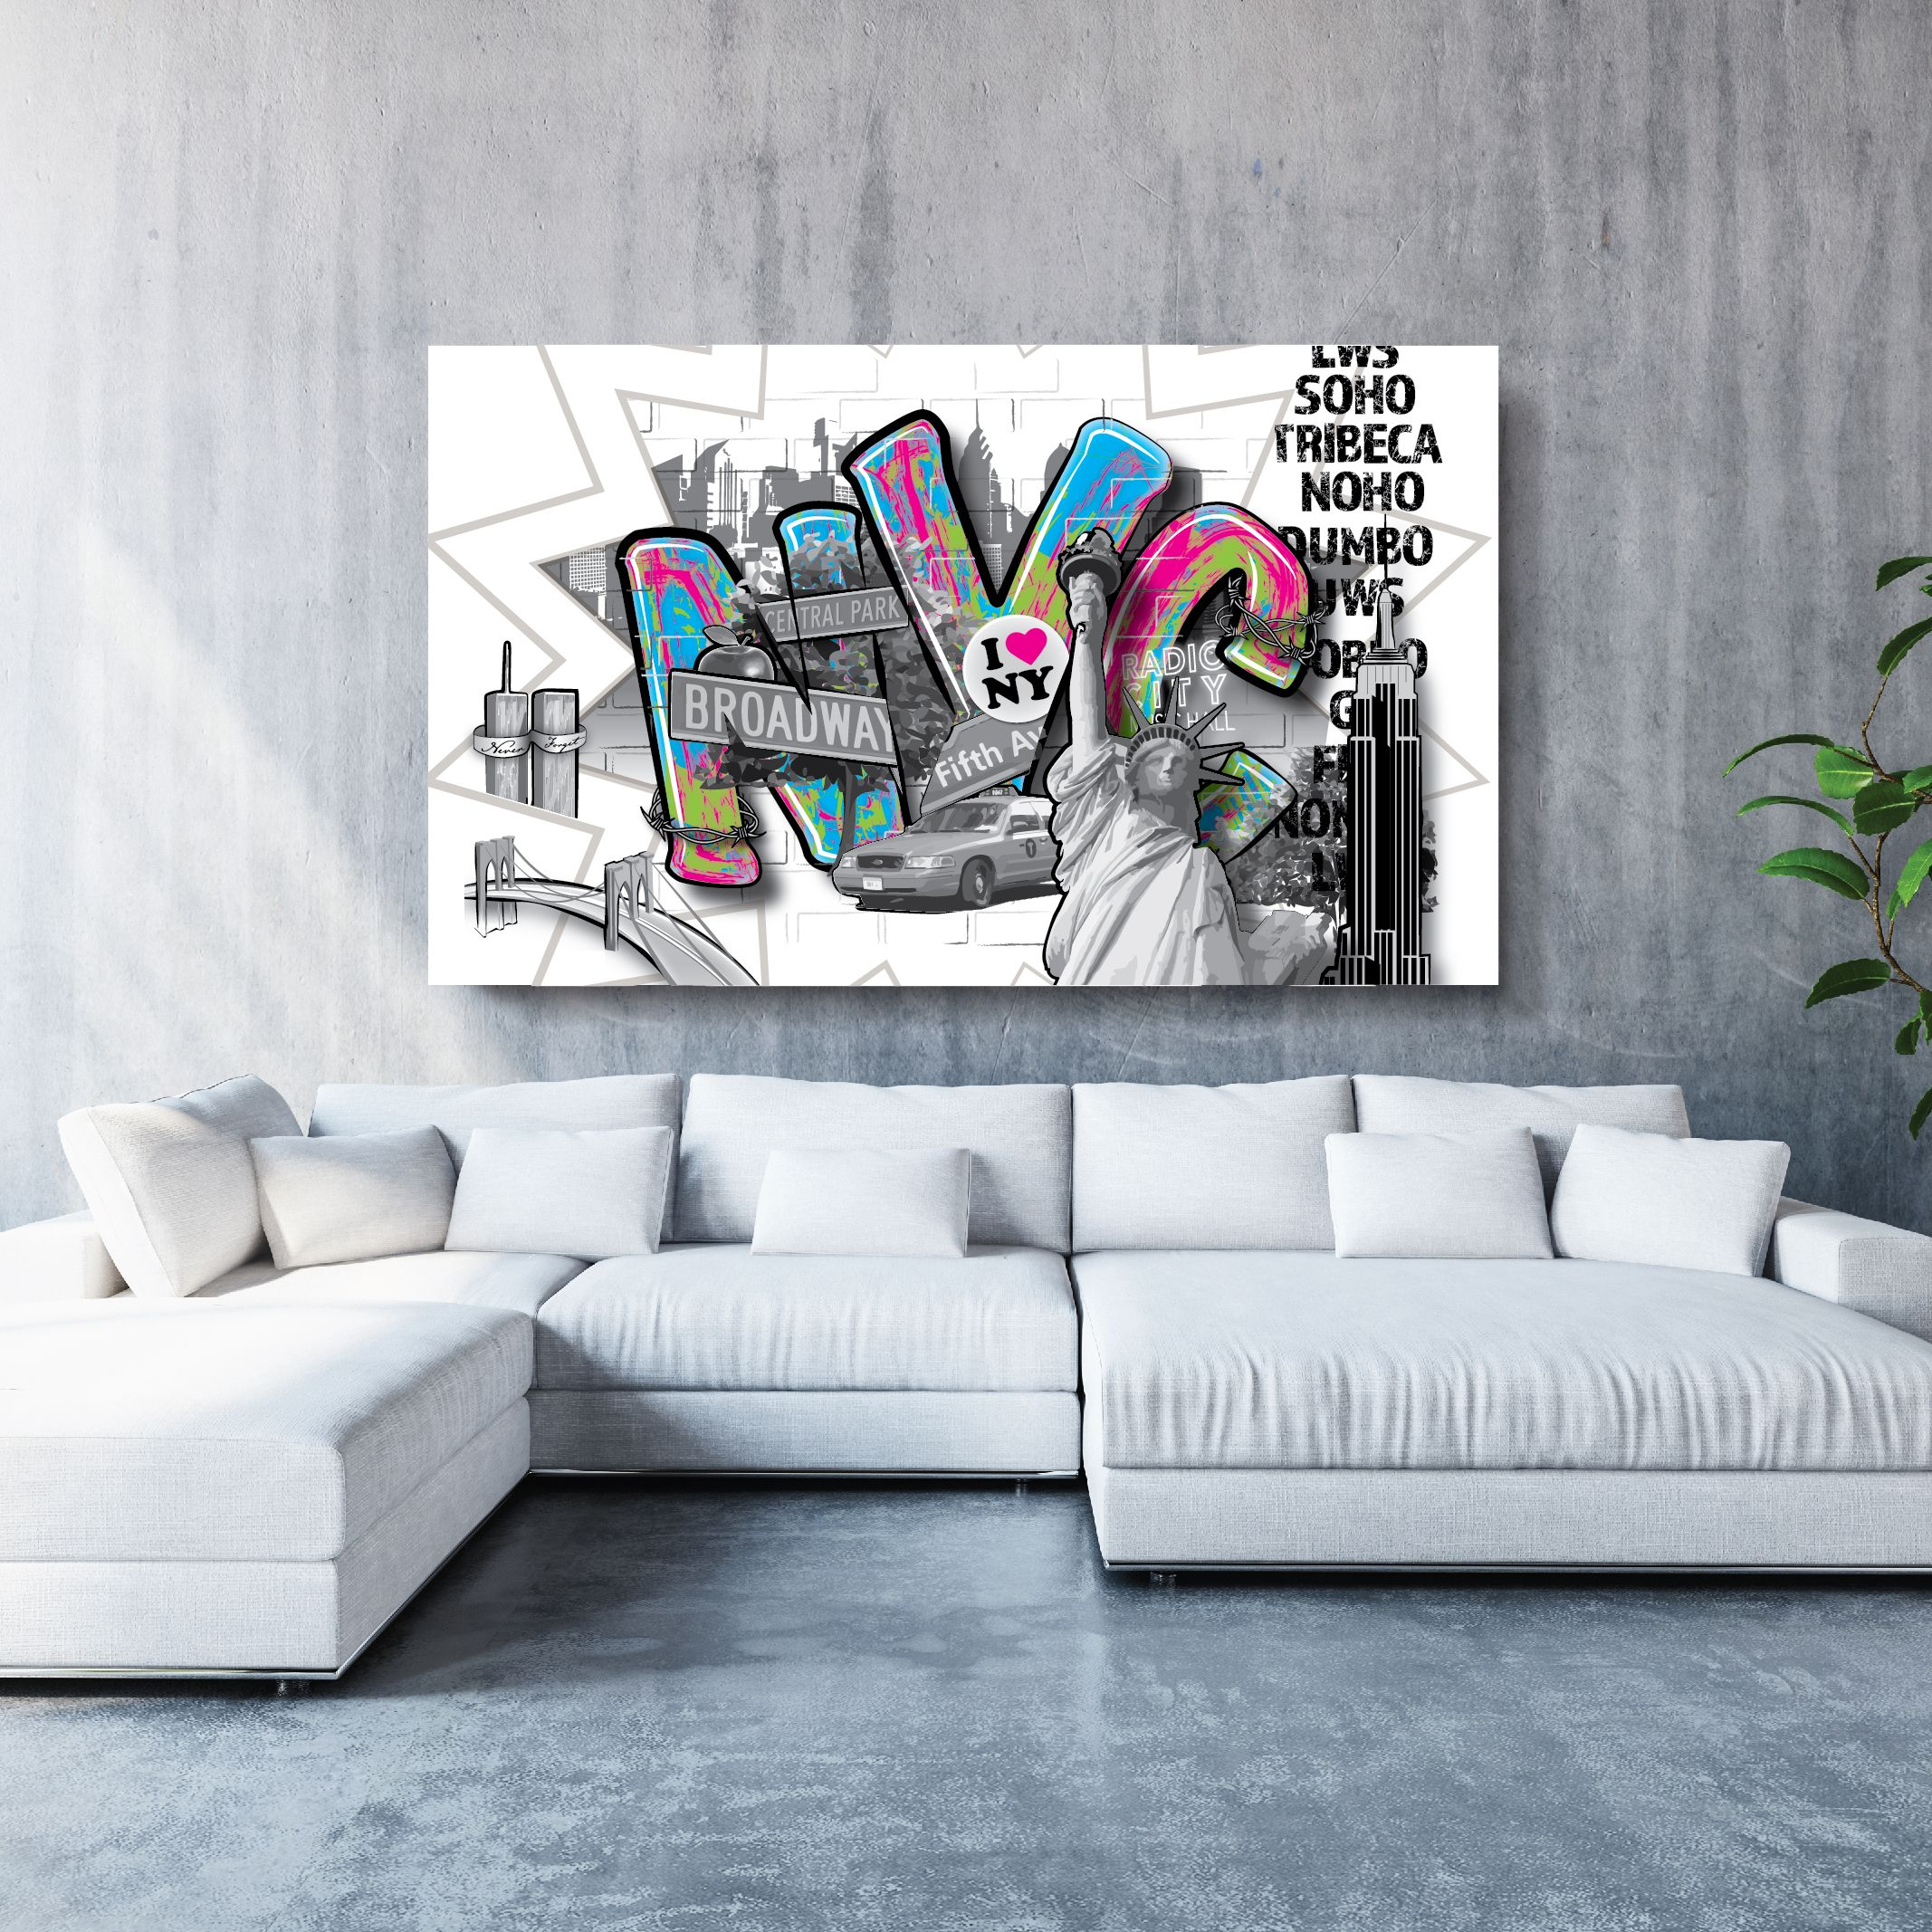 This dynamic nyc graffiti art can be customized to perfectly suit your space perfect for